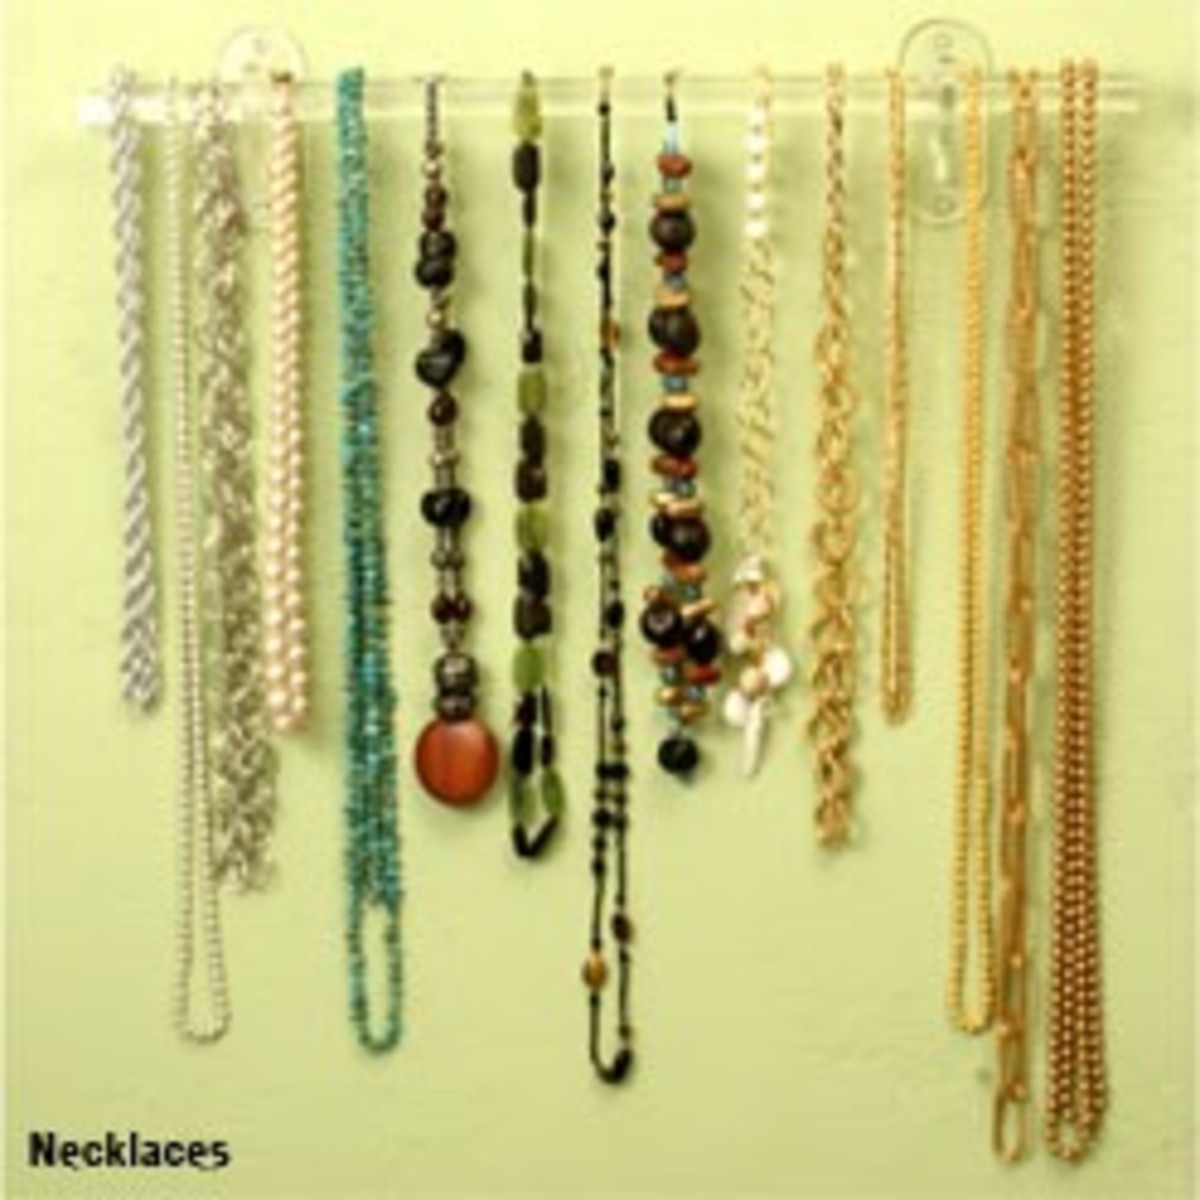 Idea#2: Hanging necklaces on a jewelry hanger